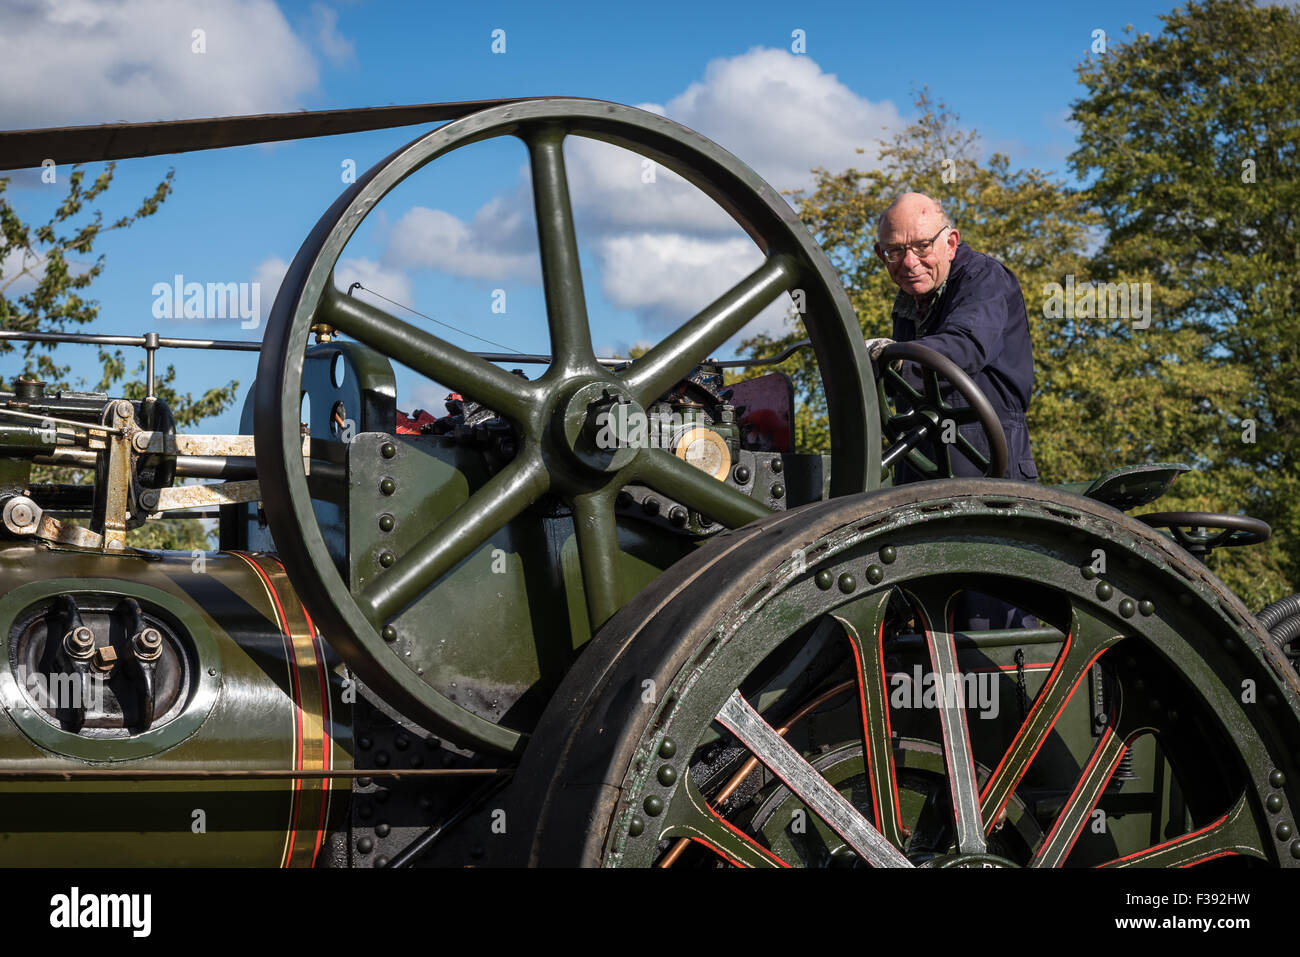 Vintage Steam Traction Locomotive with flywheel driving a belt - Stock Image